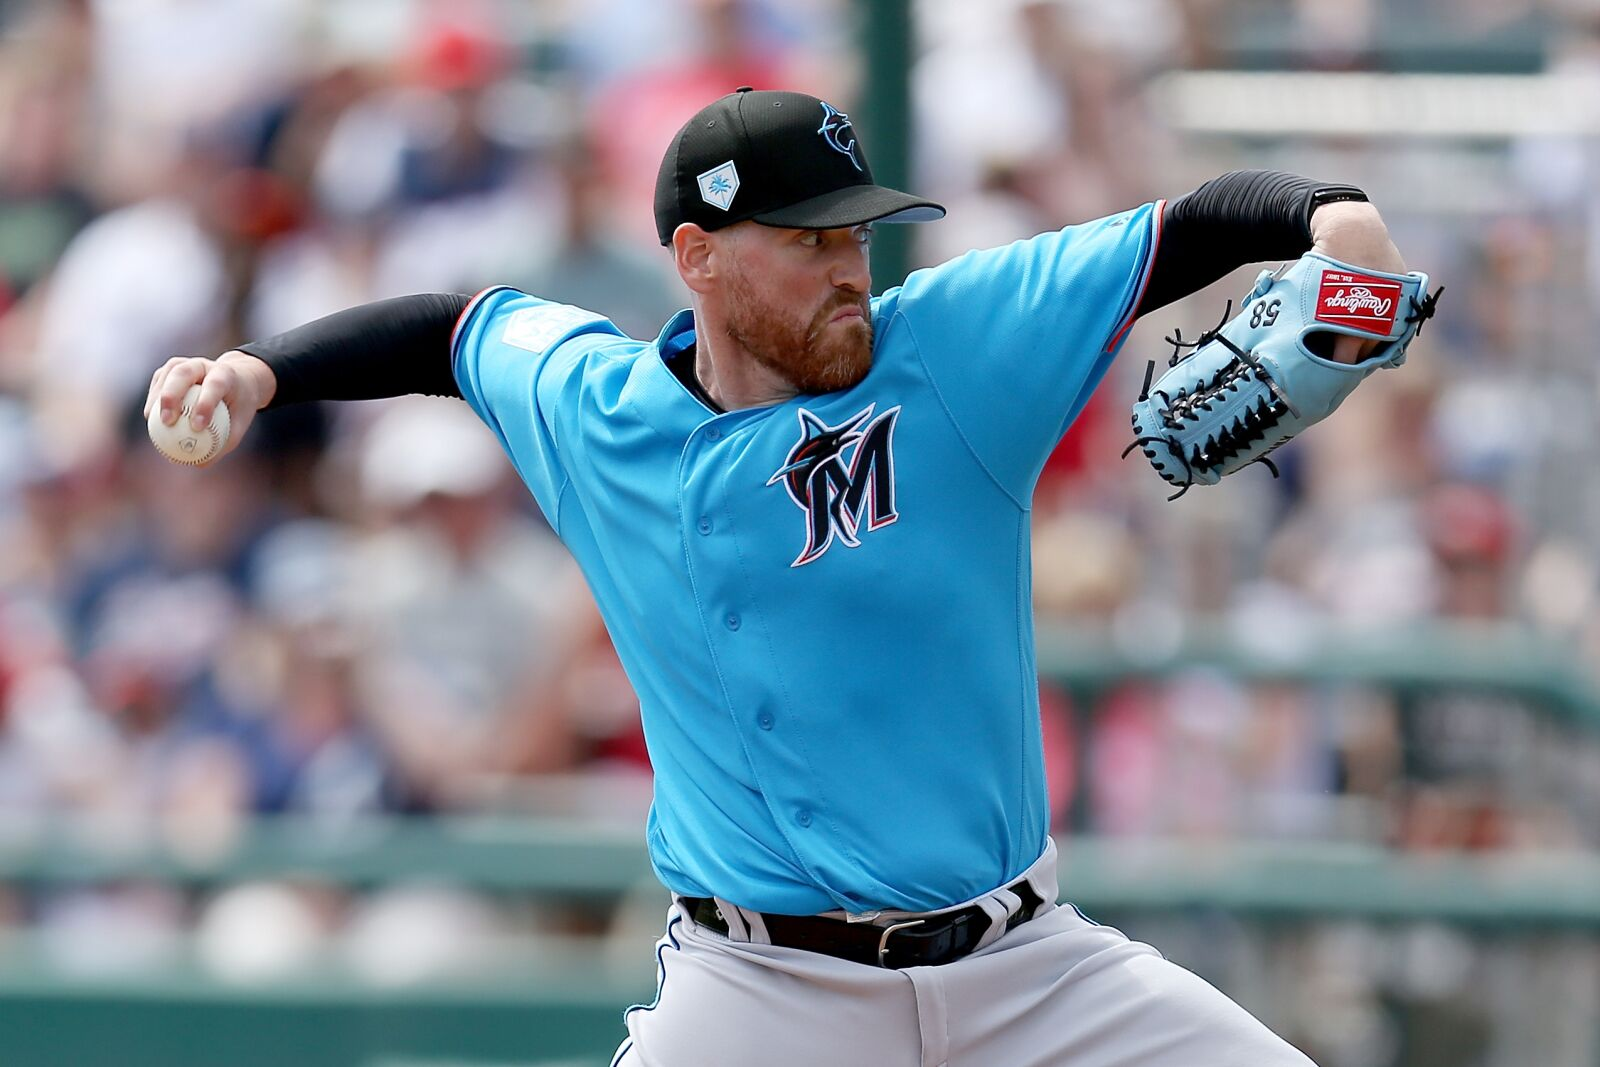 c64810dcfa2 Miami Marlins release Dan Straily in unexpected move